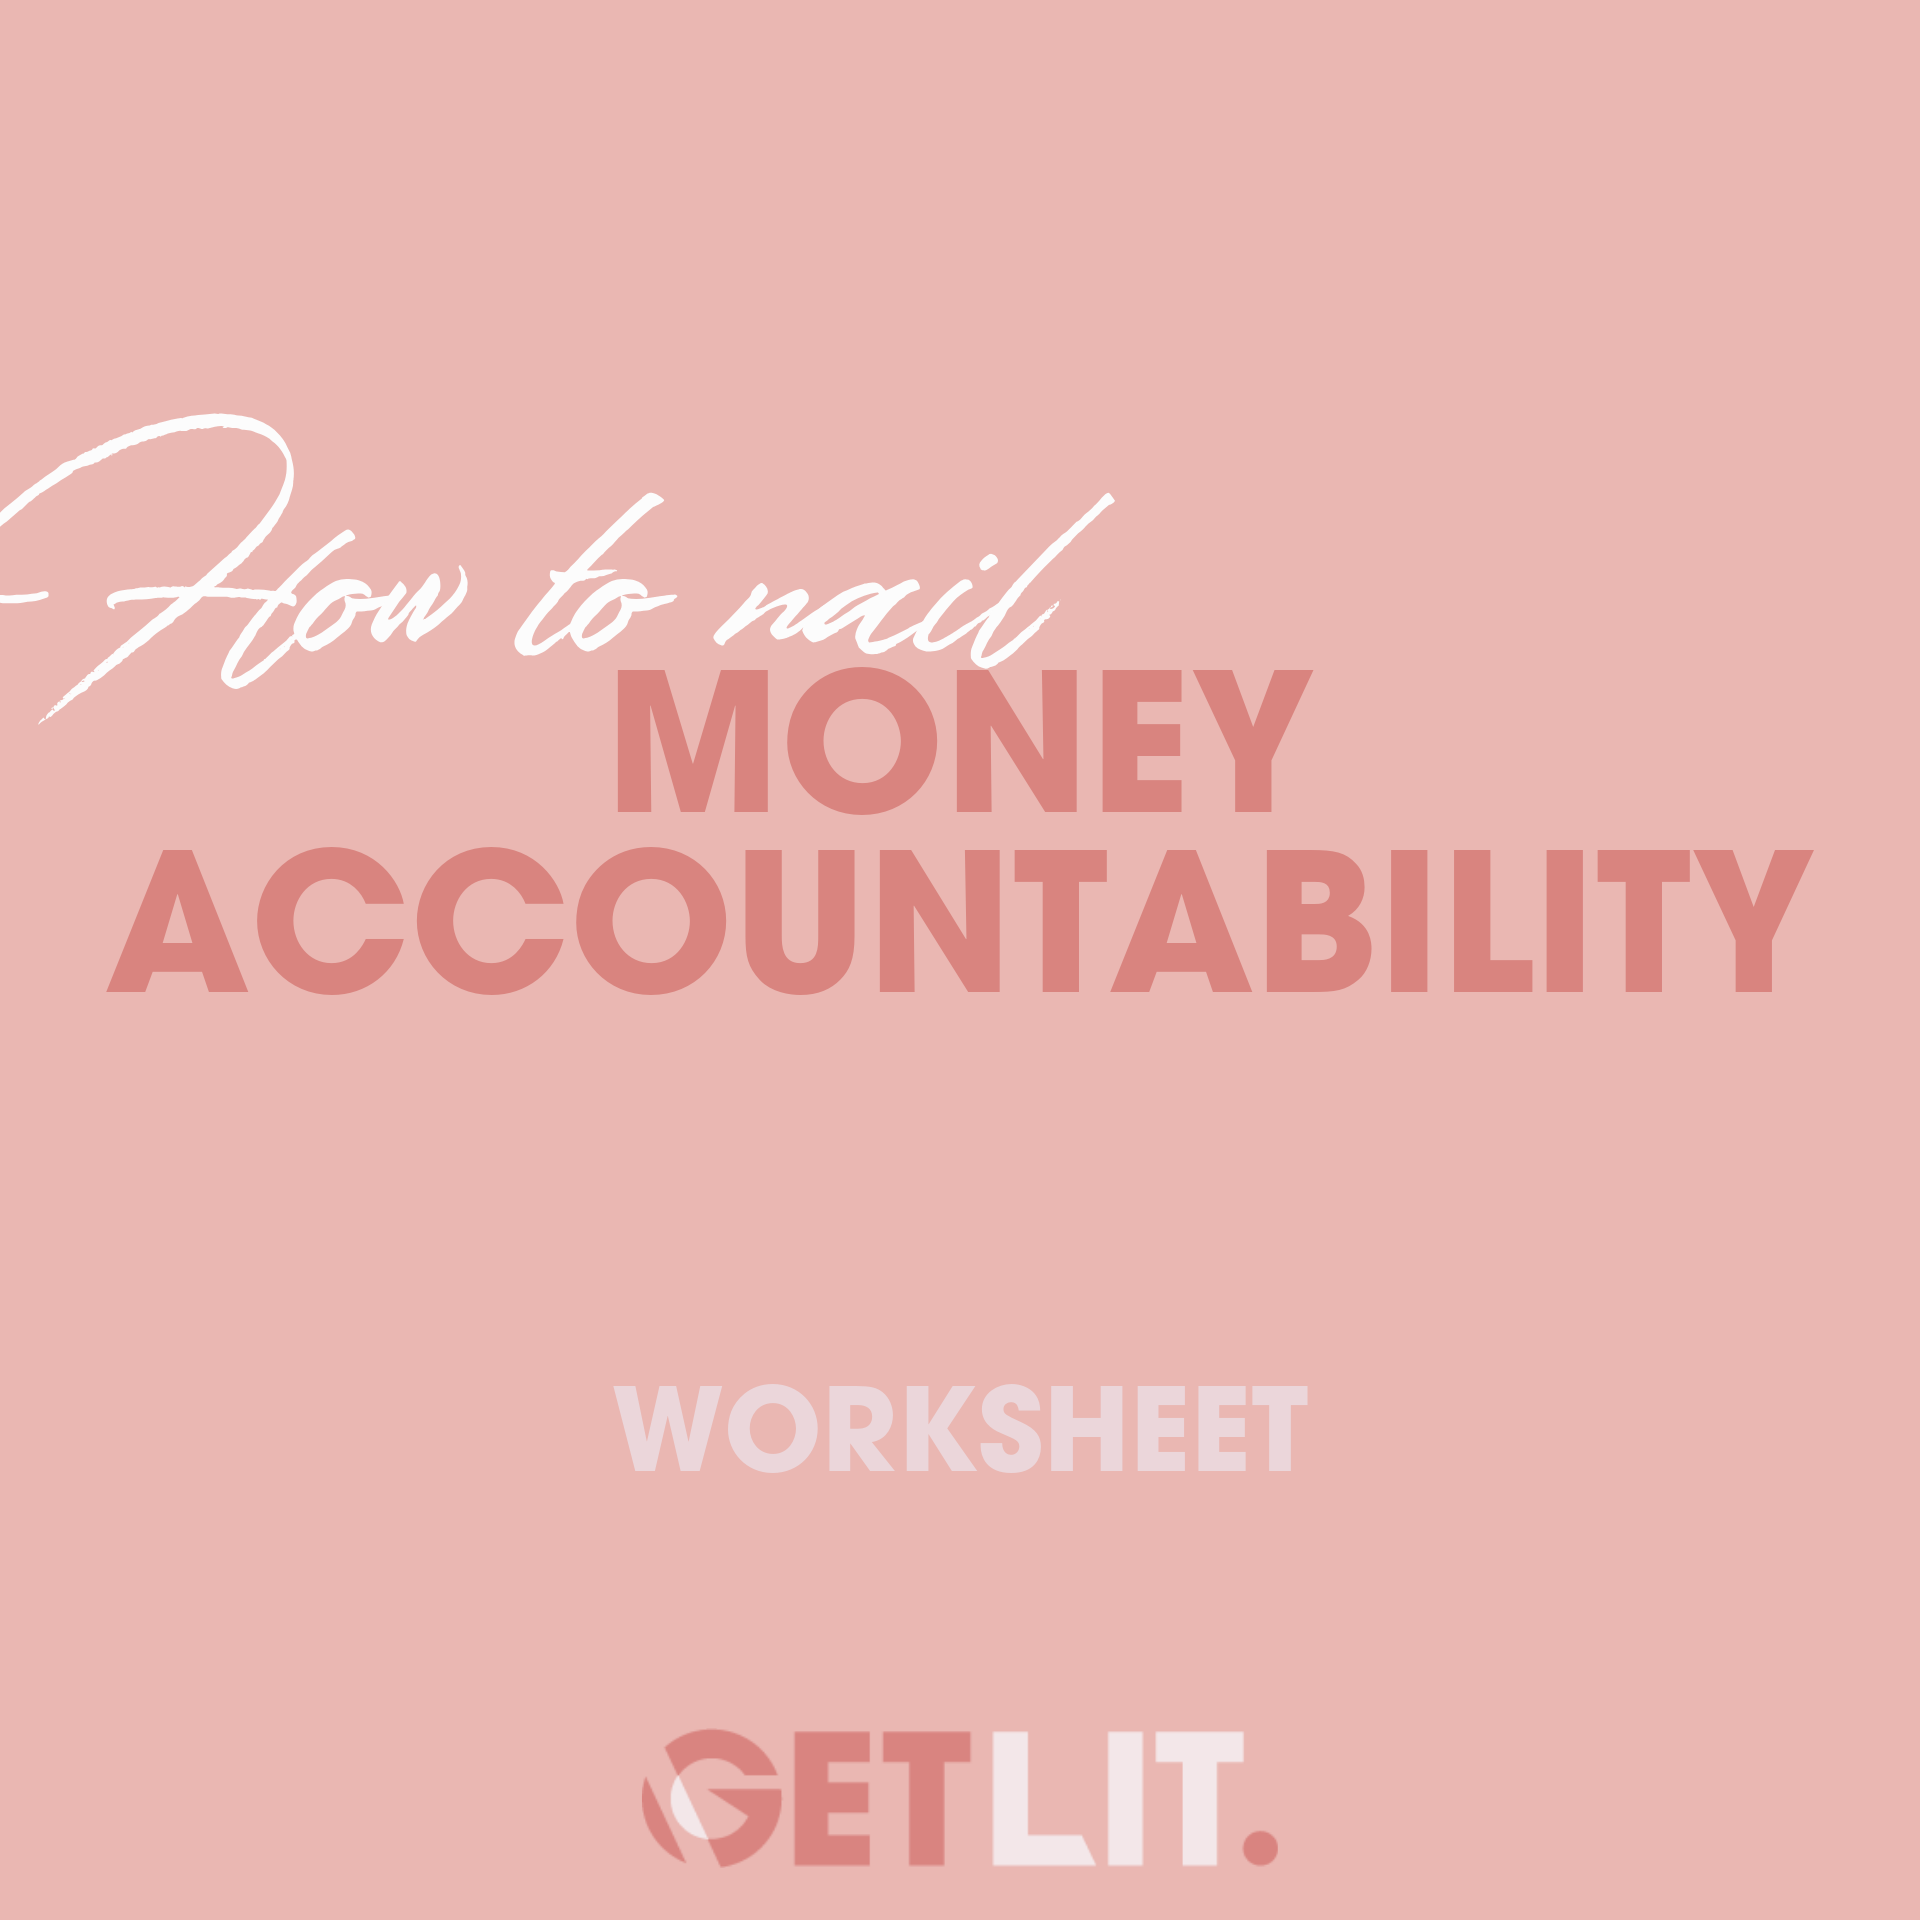 HOW TO NAIL MONEY ACCOUNTABILITY - Keeping accountable with your finances is the last step and a fundamental part of the puzzle when it comes to keep on top of your money. As we grow, we need to keep checking in on what our goals look like and have frameworks in place daily, weekly and monthly that will keep us accountable. What new frameworks can you put in place to keep a check of your money? Time to get organised!